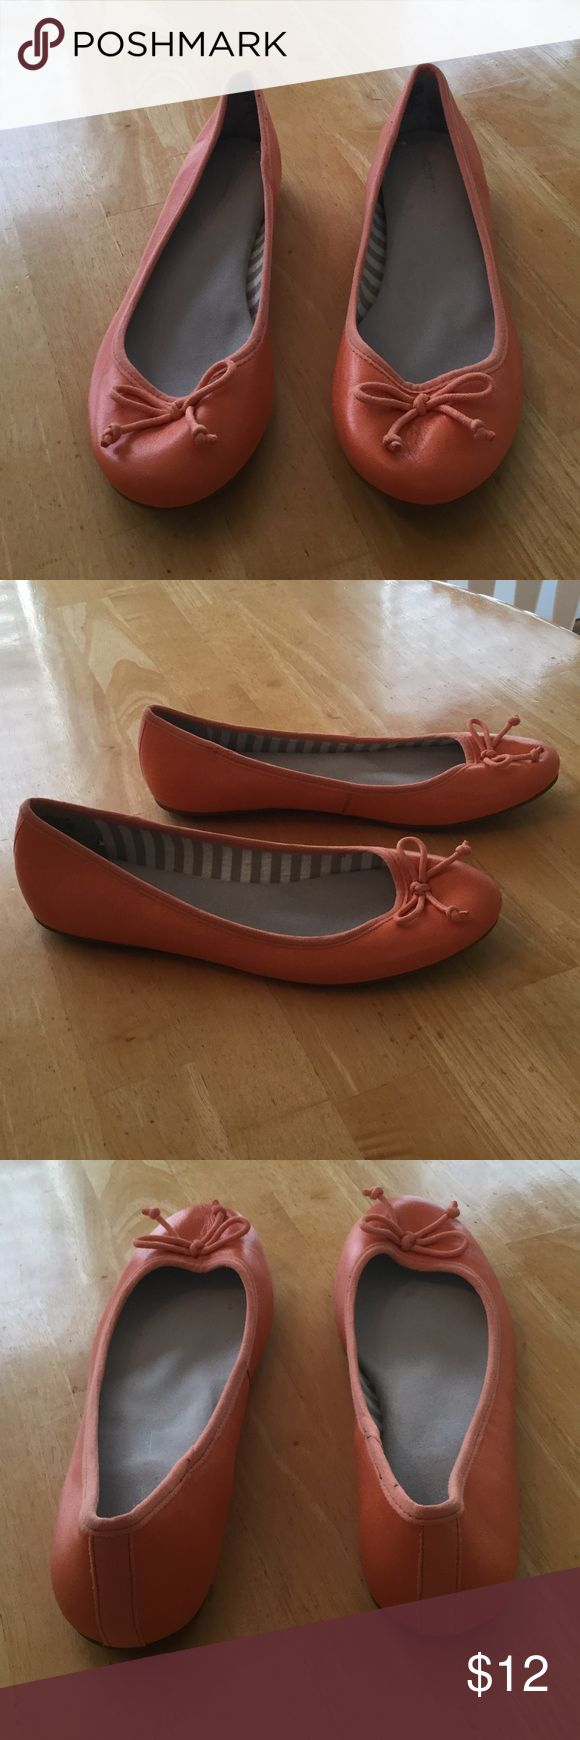 Rockport shoes Soft good condition flats Shoes Flats & Loafers